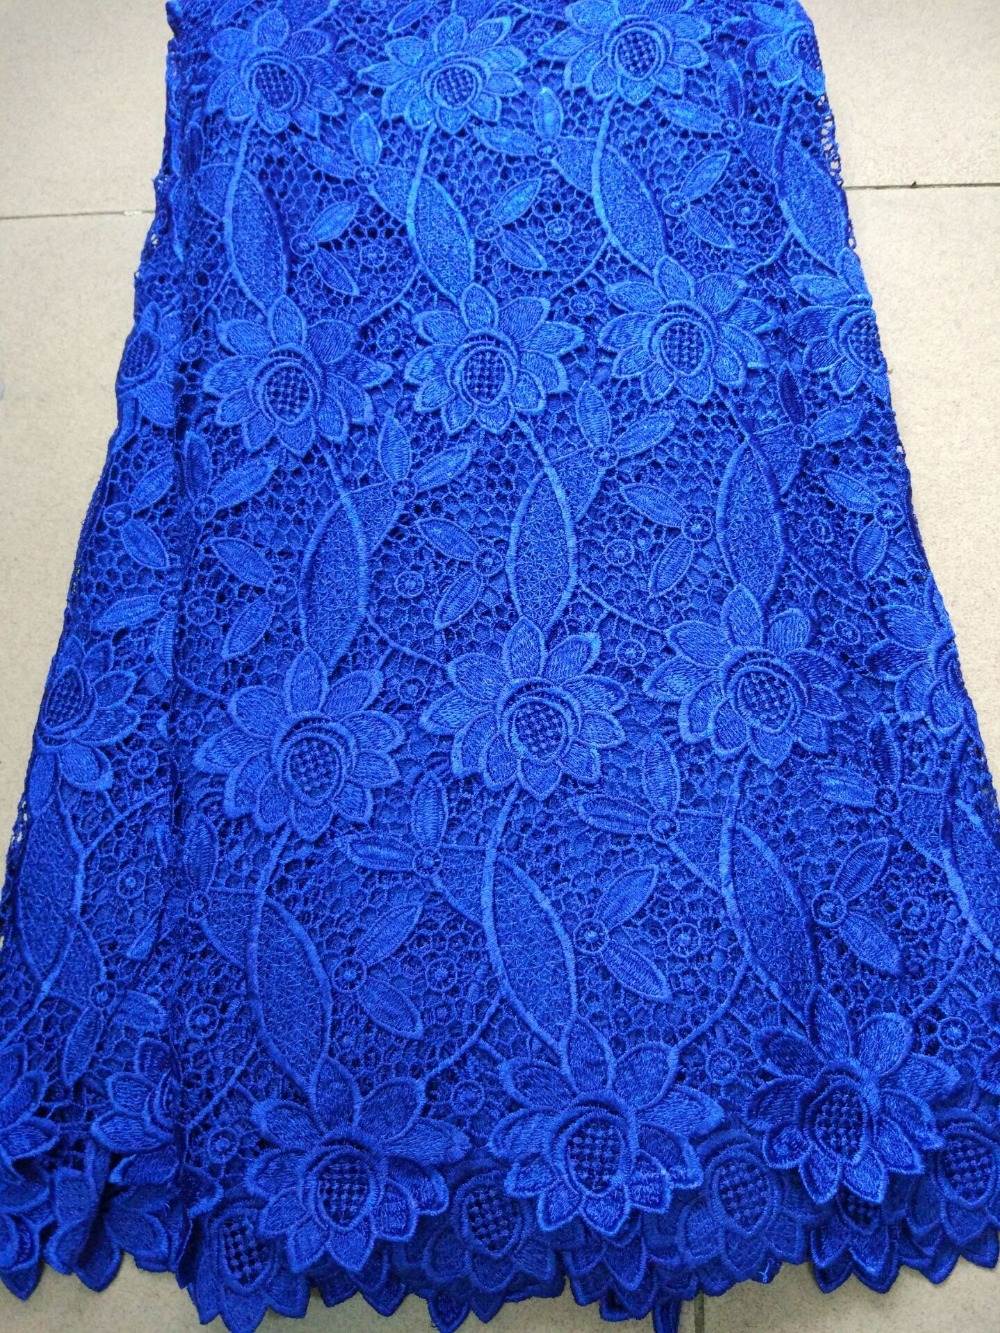 5 Yards/pc Royal blue water soluble guipure lace with flower pattern,Nice looking african cord lace fabric for clothing ZQW7-35 Yards/pc Royal blue water soluble guipure lace with flower pattern,Nice looking african cord lace fabric for clothing ZQW7-3